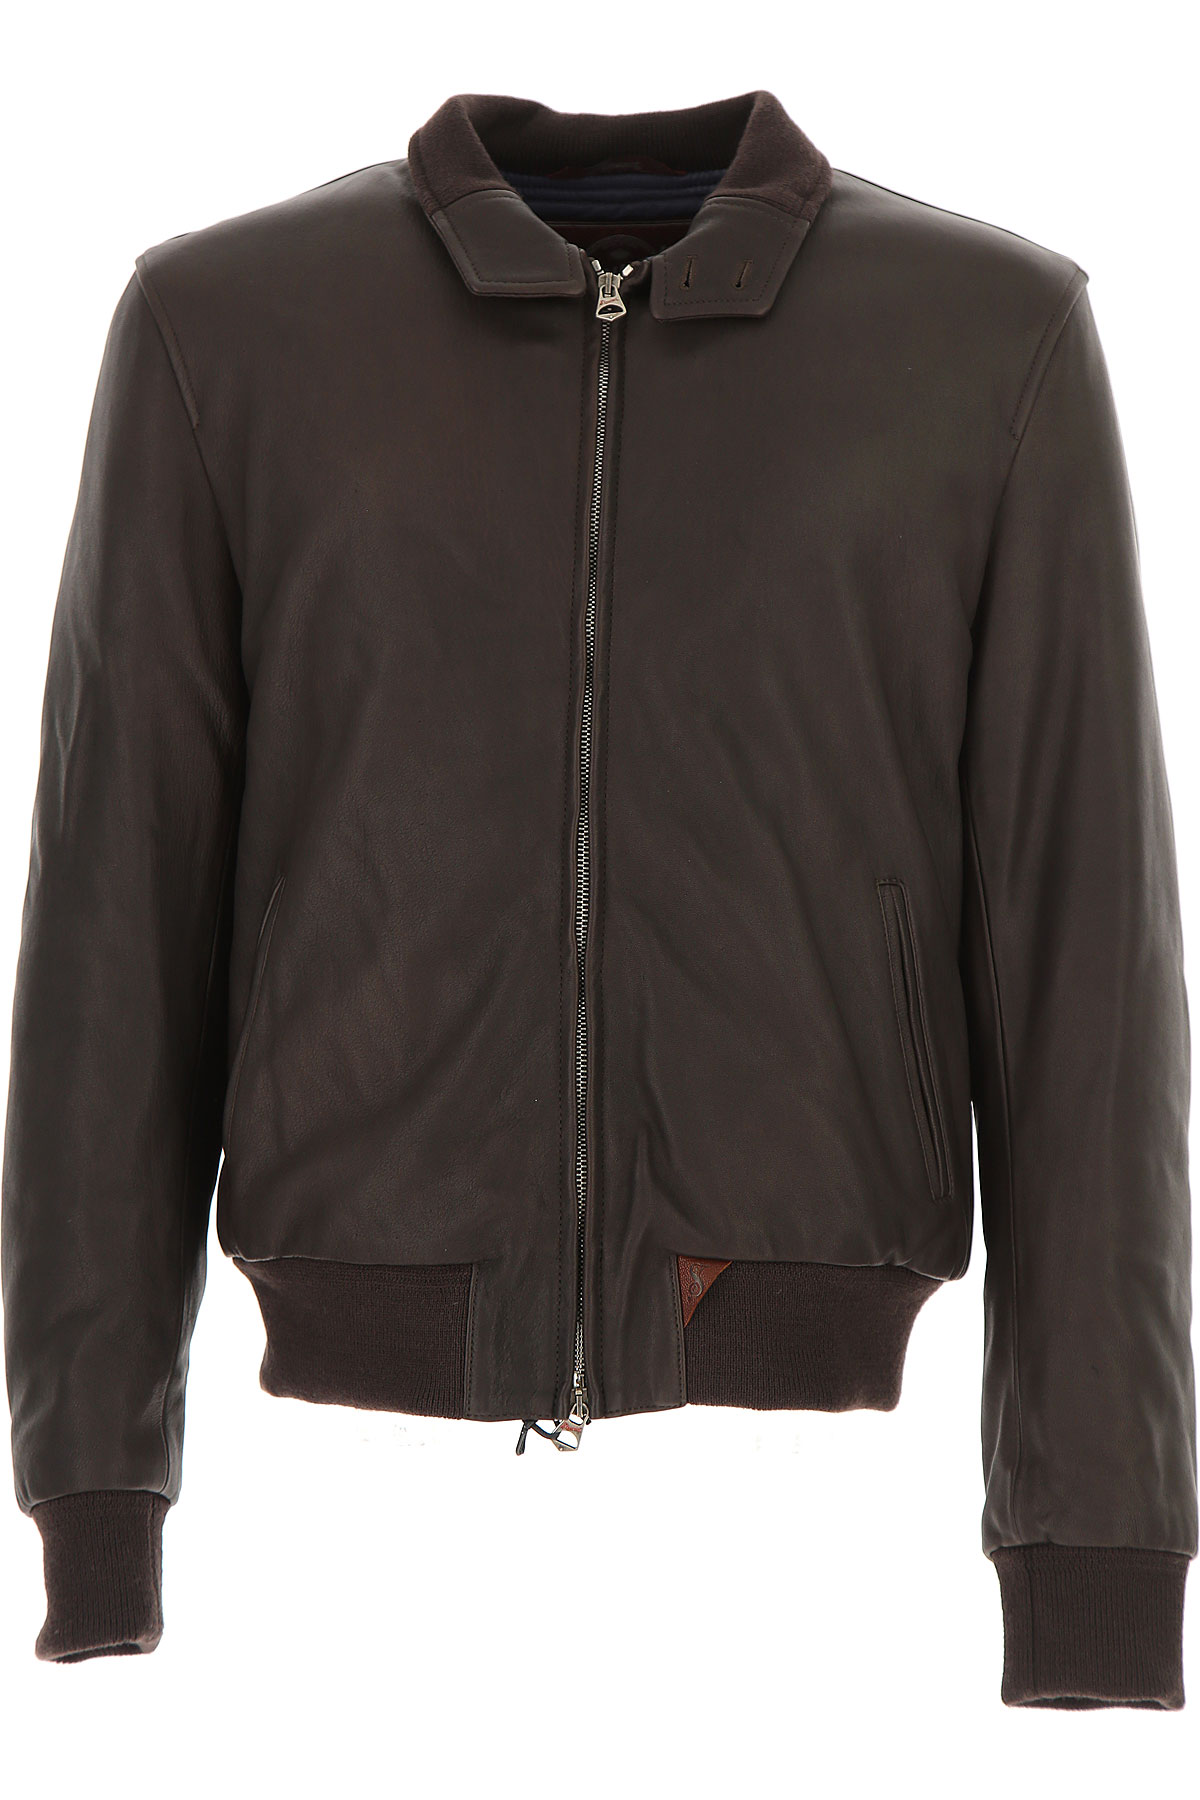 Image of Stewart Leather Jacket for Men, Brown, Leather, 2017, L XL